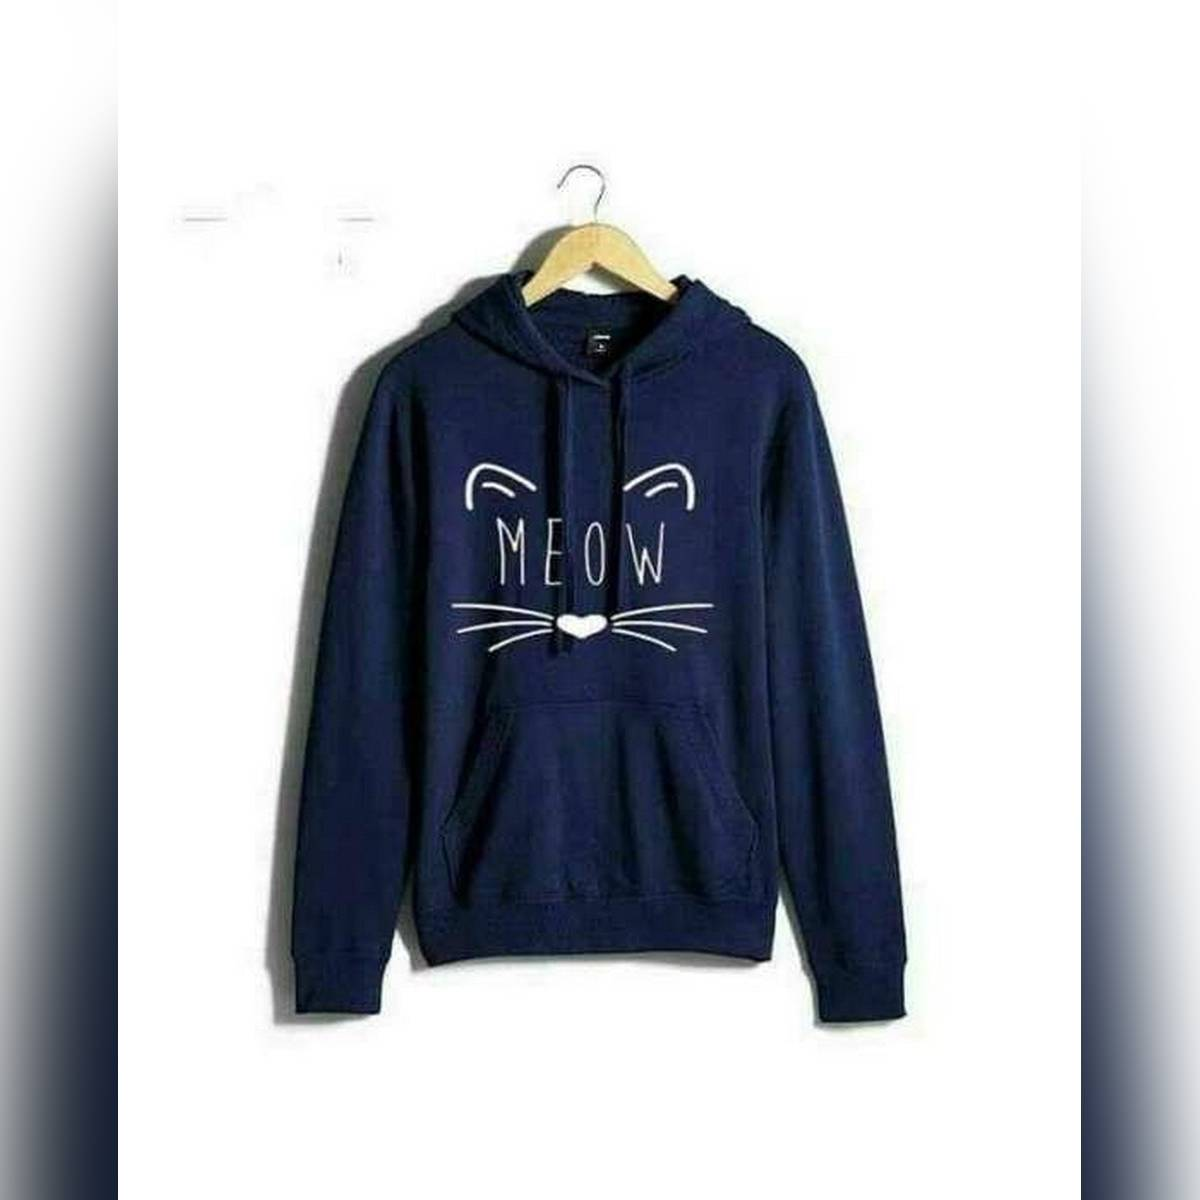 Blue Meao Hoodie For Girls And Women